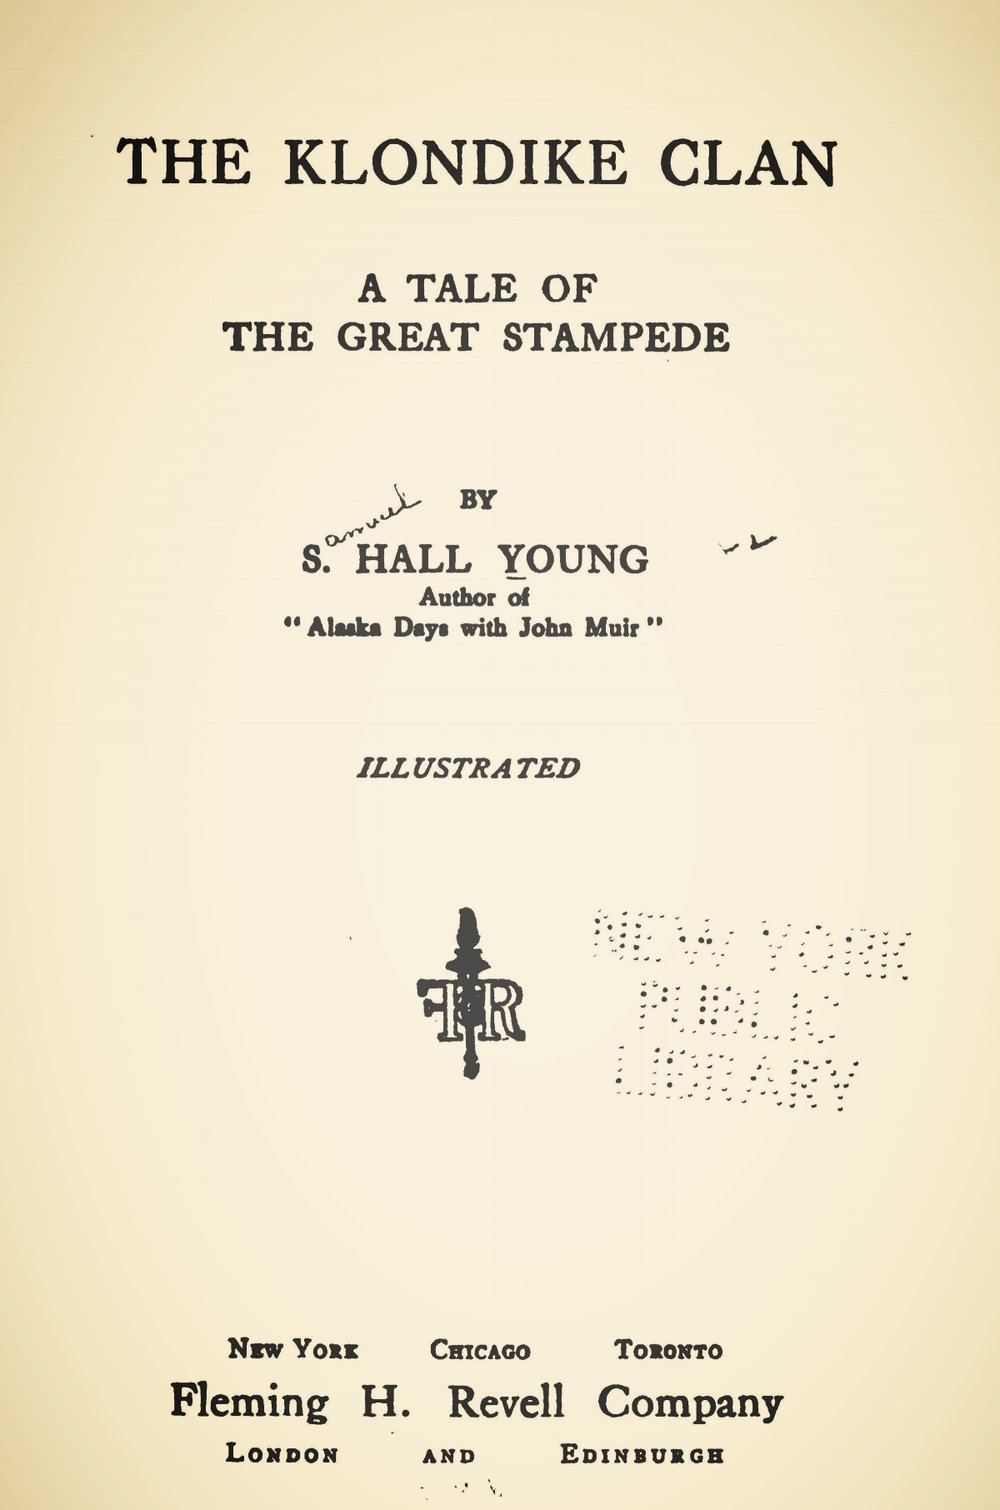 Young, Samuel Hall, The Klondike Clan Title Page.jpg